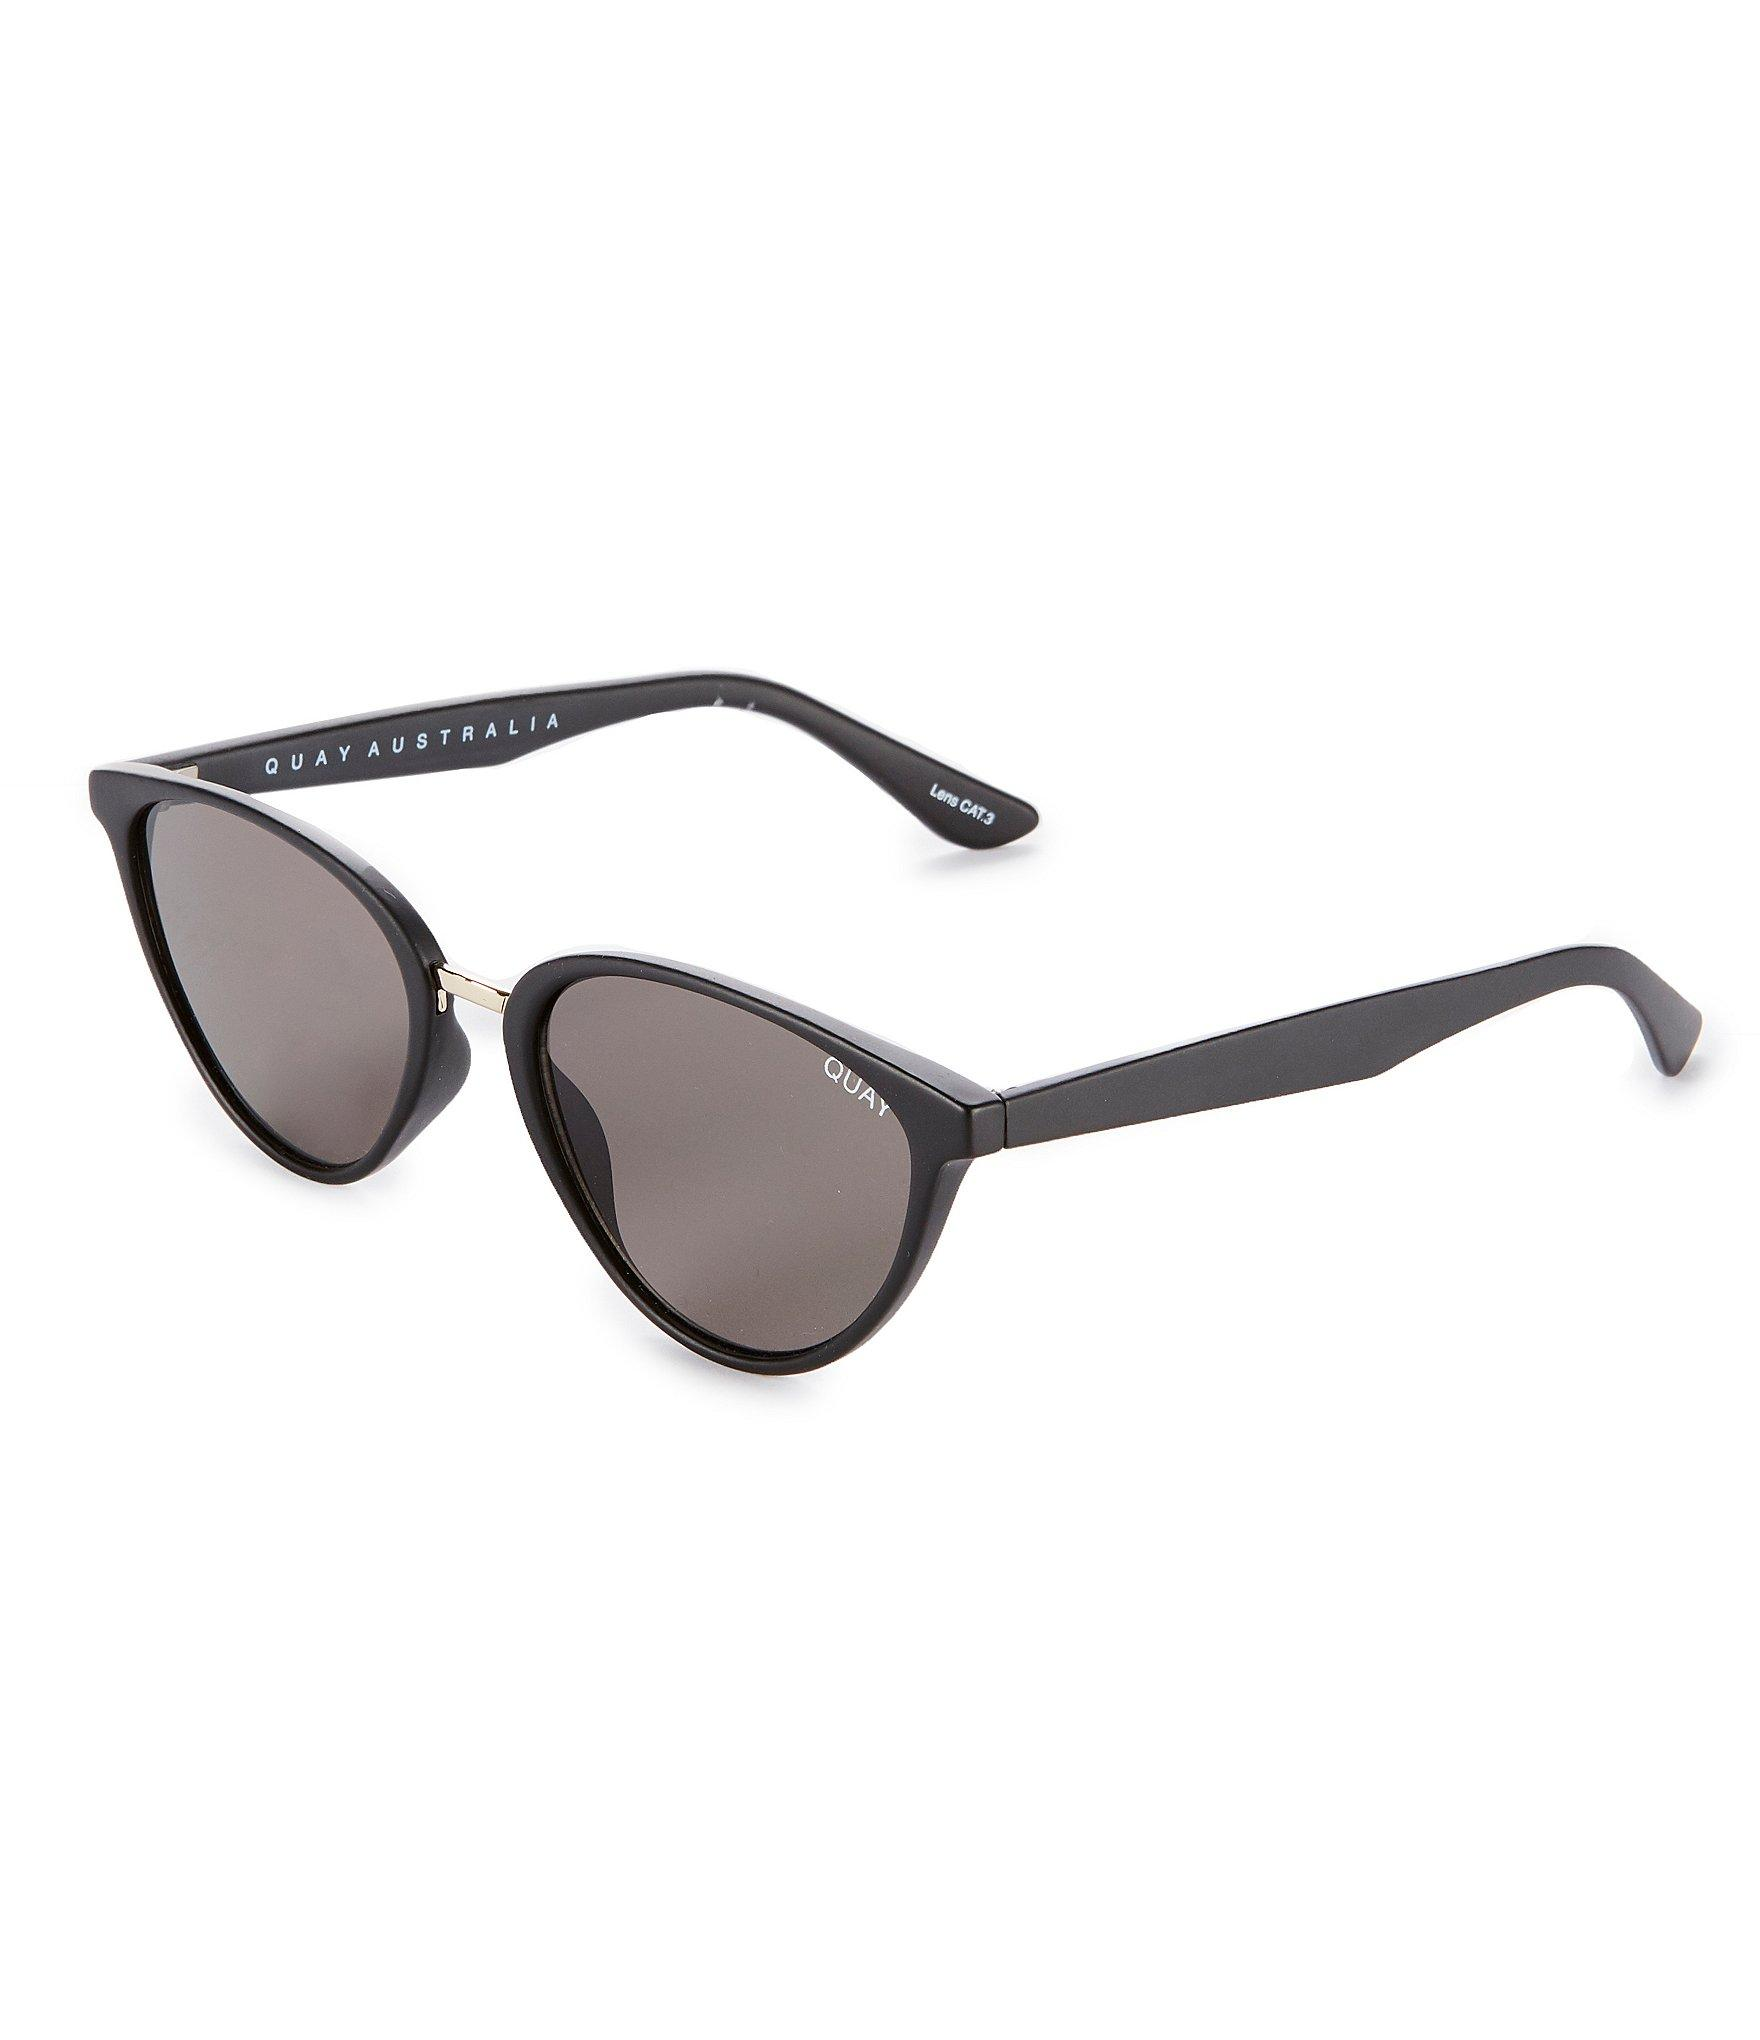 41b088cc3b86d Quay - Black Rumors Round Cat-eye Sunglasses - Lyst. View fullscreen